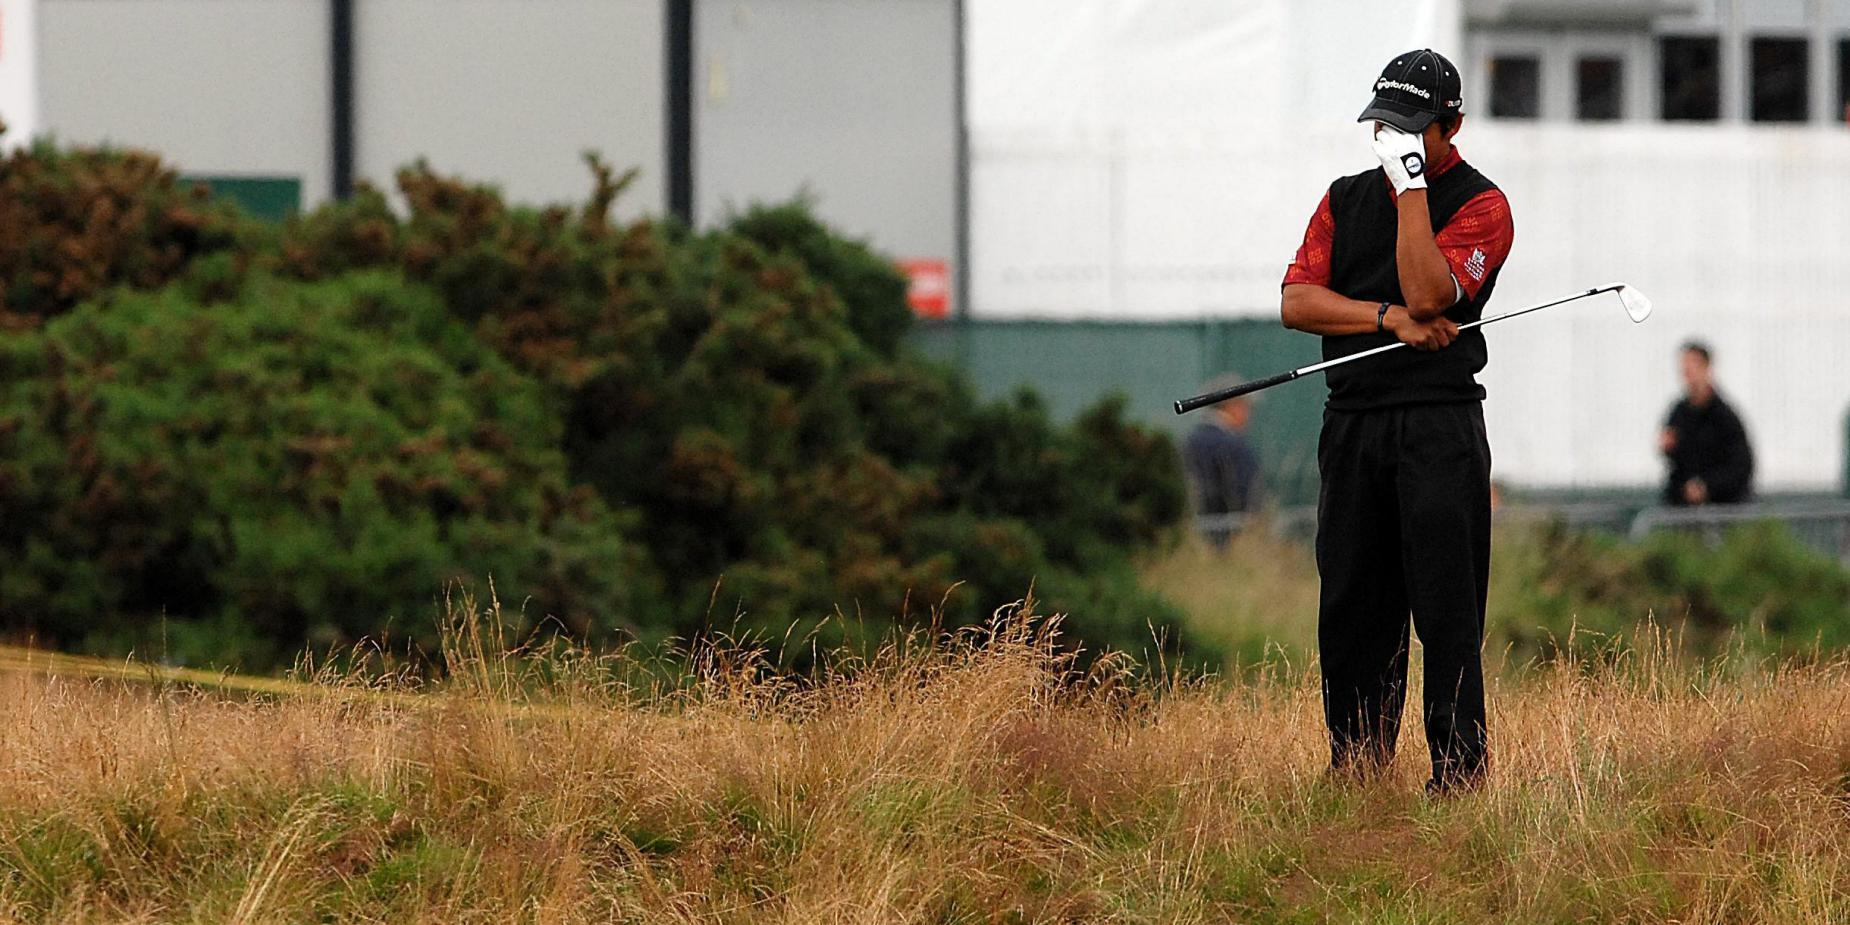 Golf - The 136th Open Championship 2007 - Day Four - Carnoustie